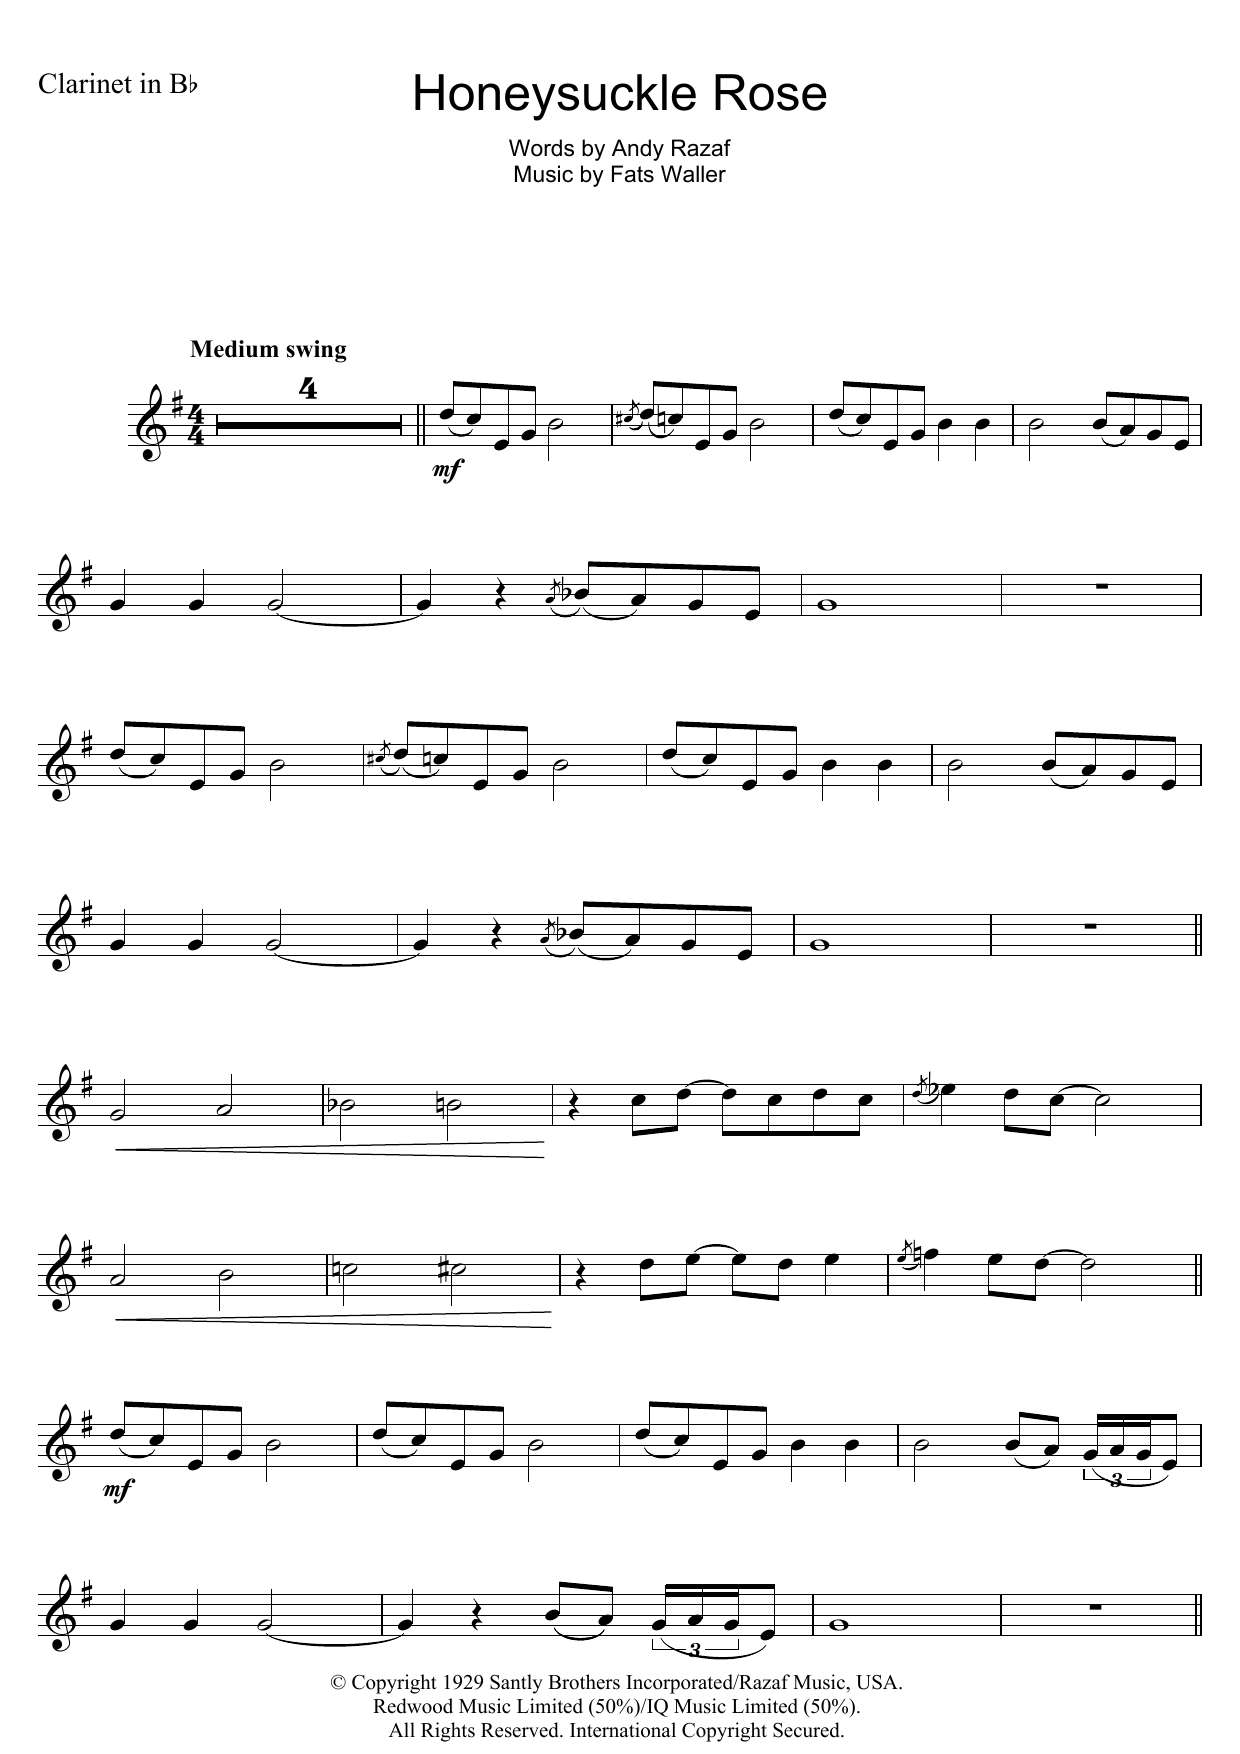 Honeysuckle Rose Sheet Music